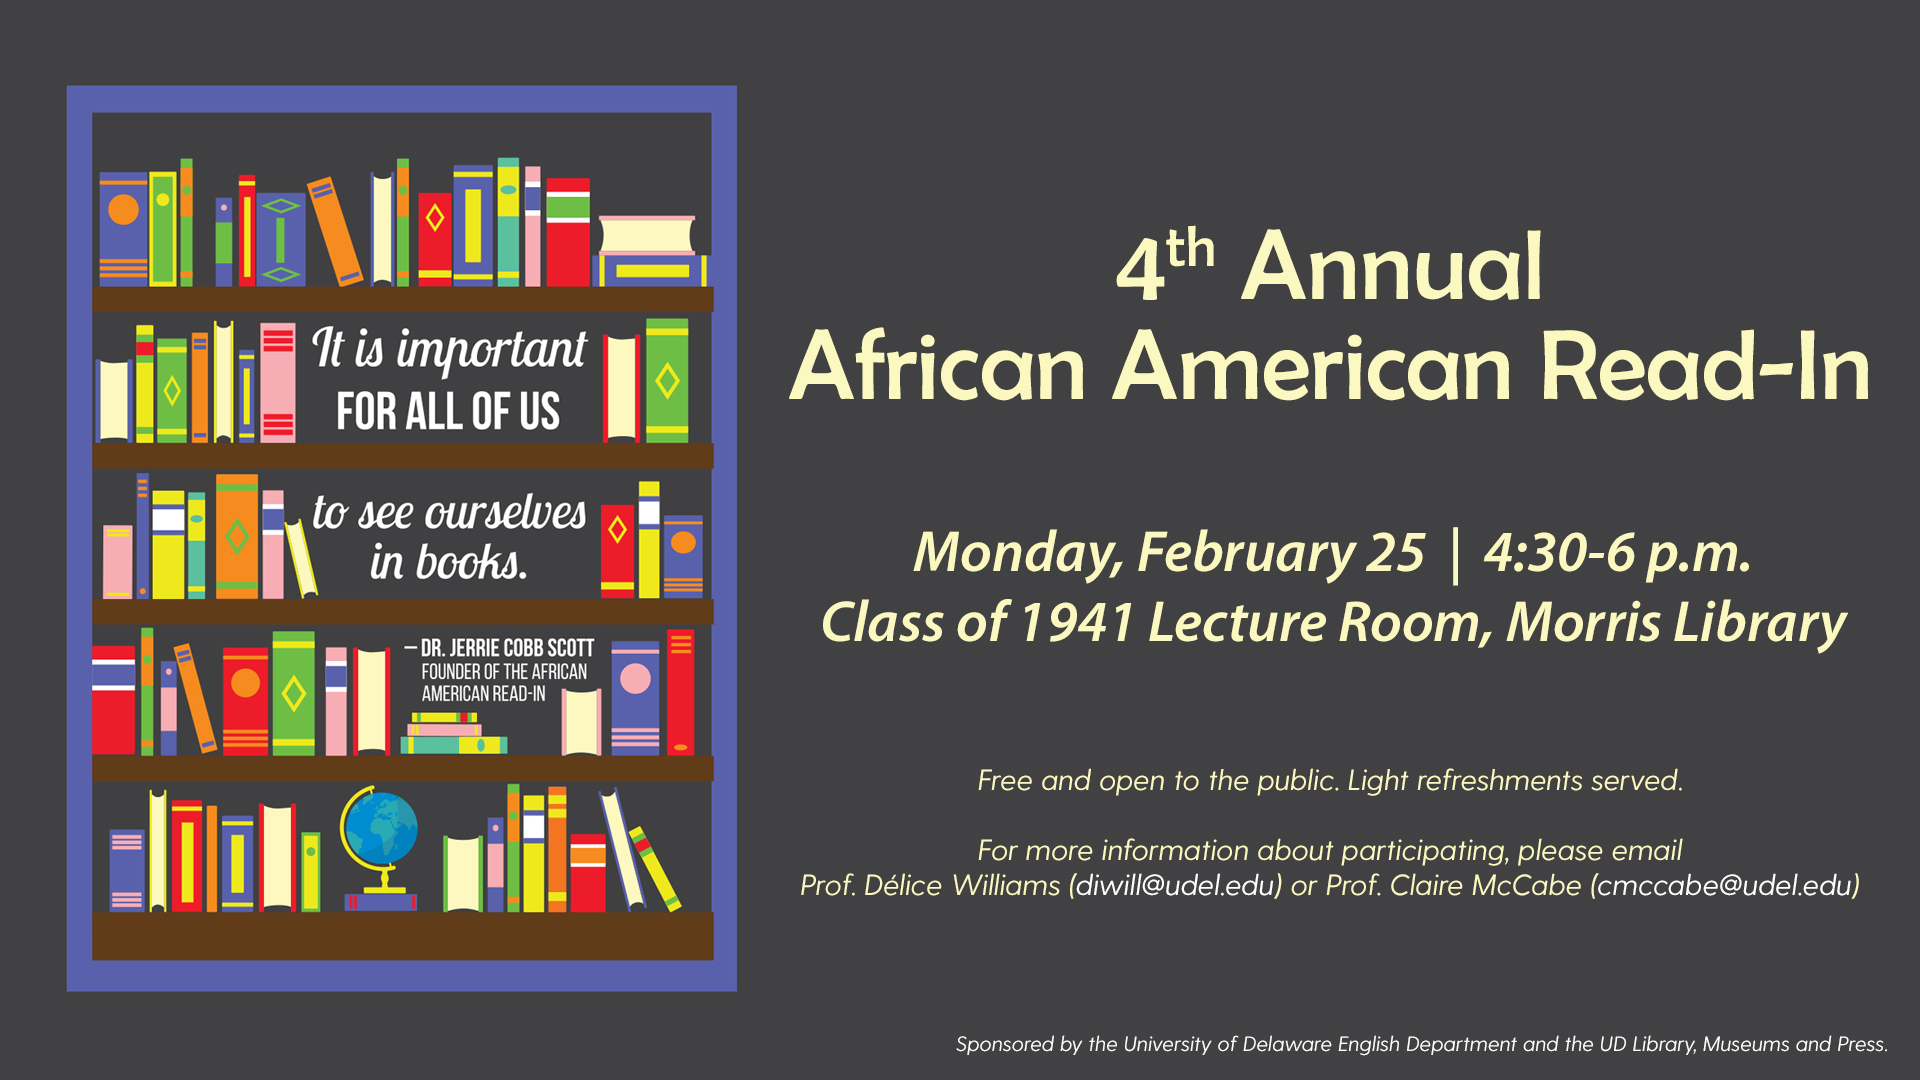 Promotional Image for African American Read-In